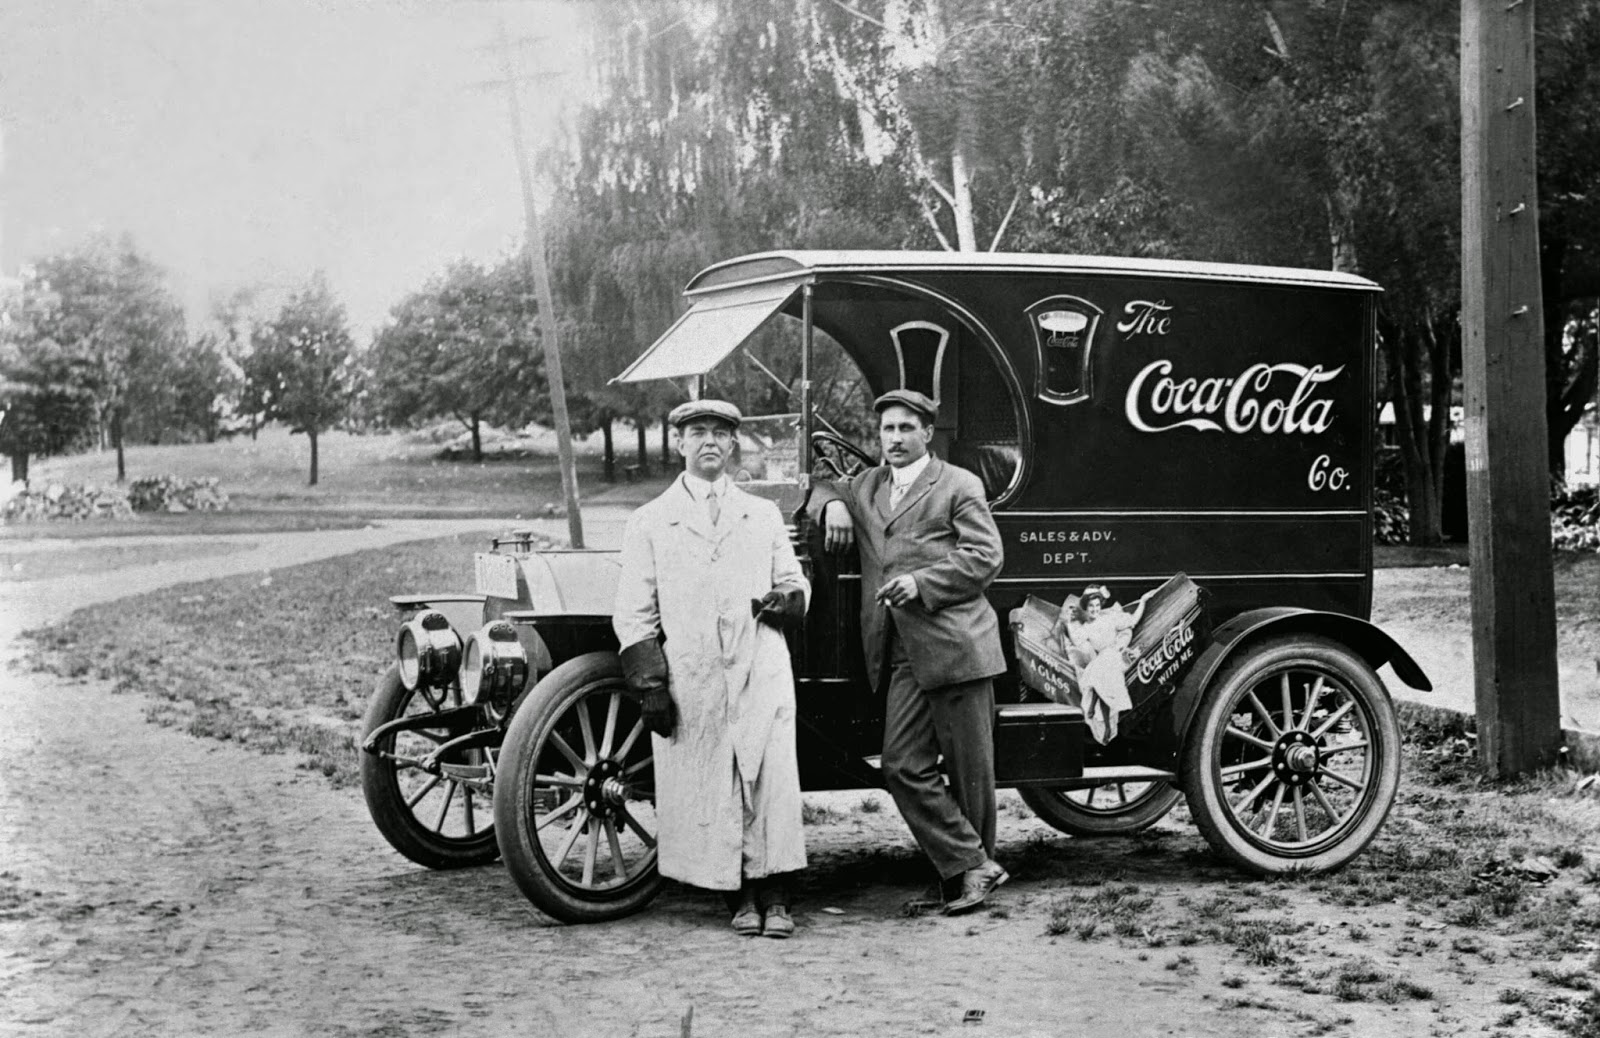 Hist 211 Ria Licenciatura Vintage Photos Of Coca Cola